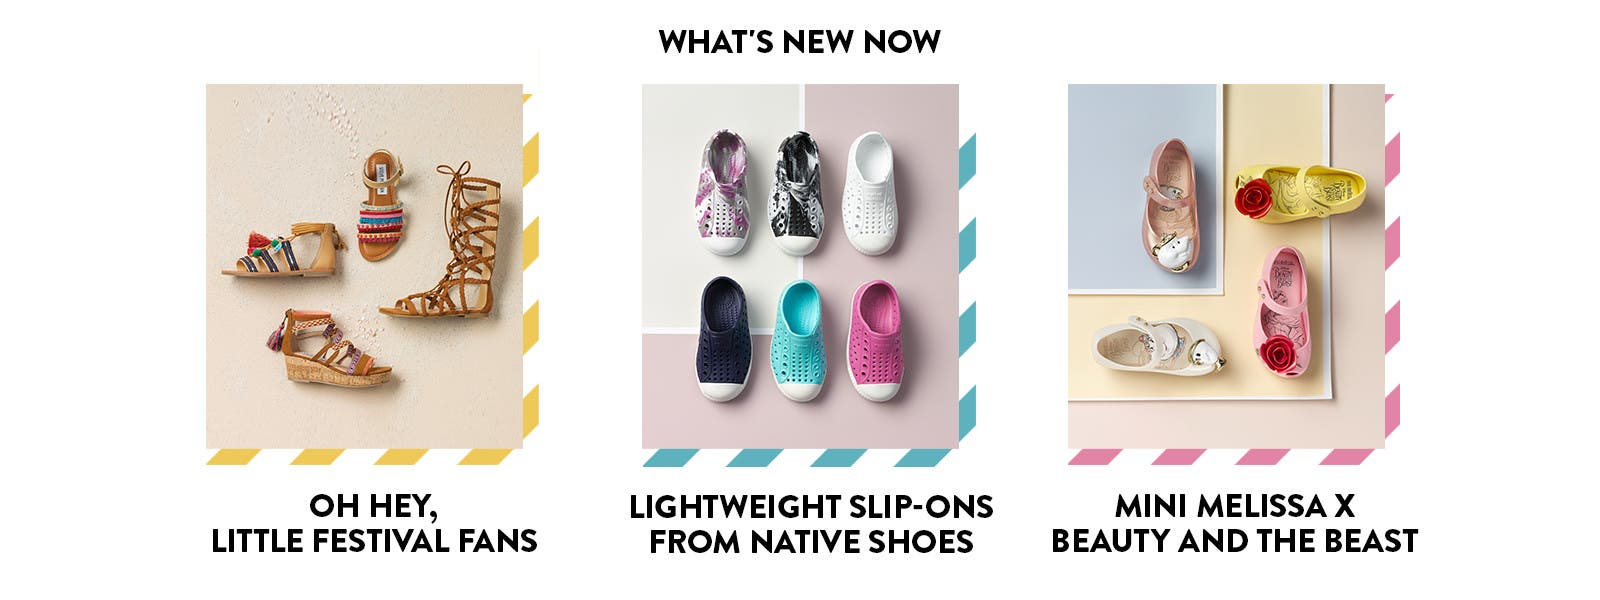 Girls' sandals for little festival fans. Girls' lightweight slip-ons, from Native Shoes and more. Girls' flats and mary janes from Mini Melissa x Beauty and the Beast and more kids' brands.